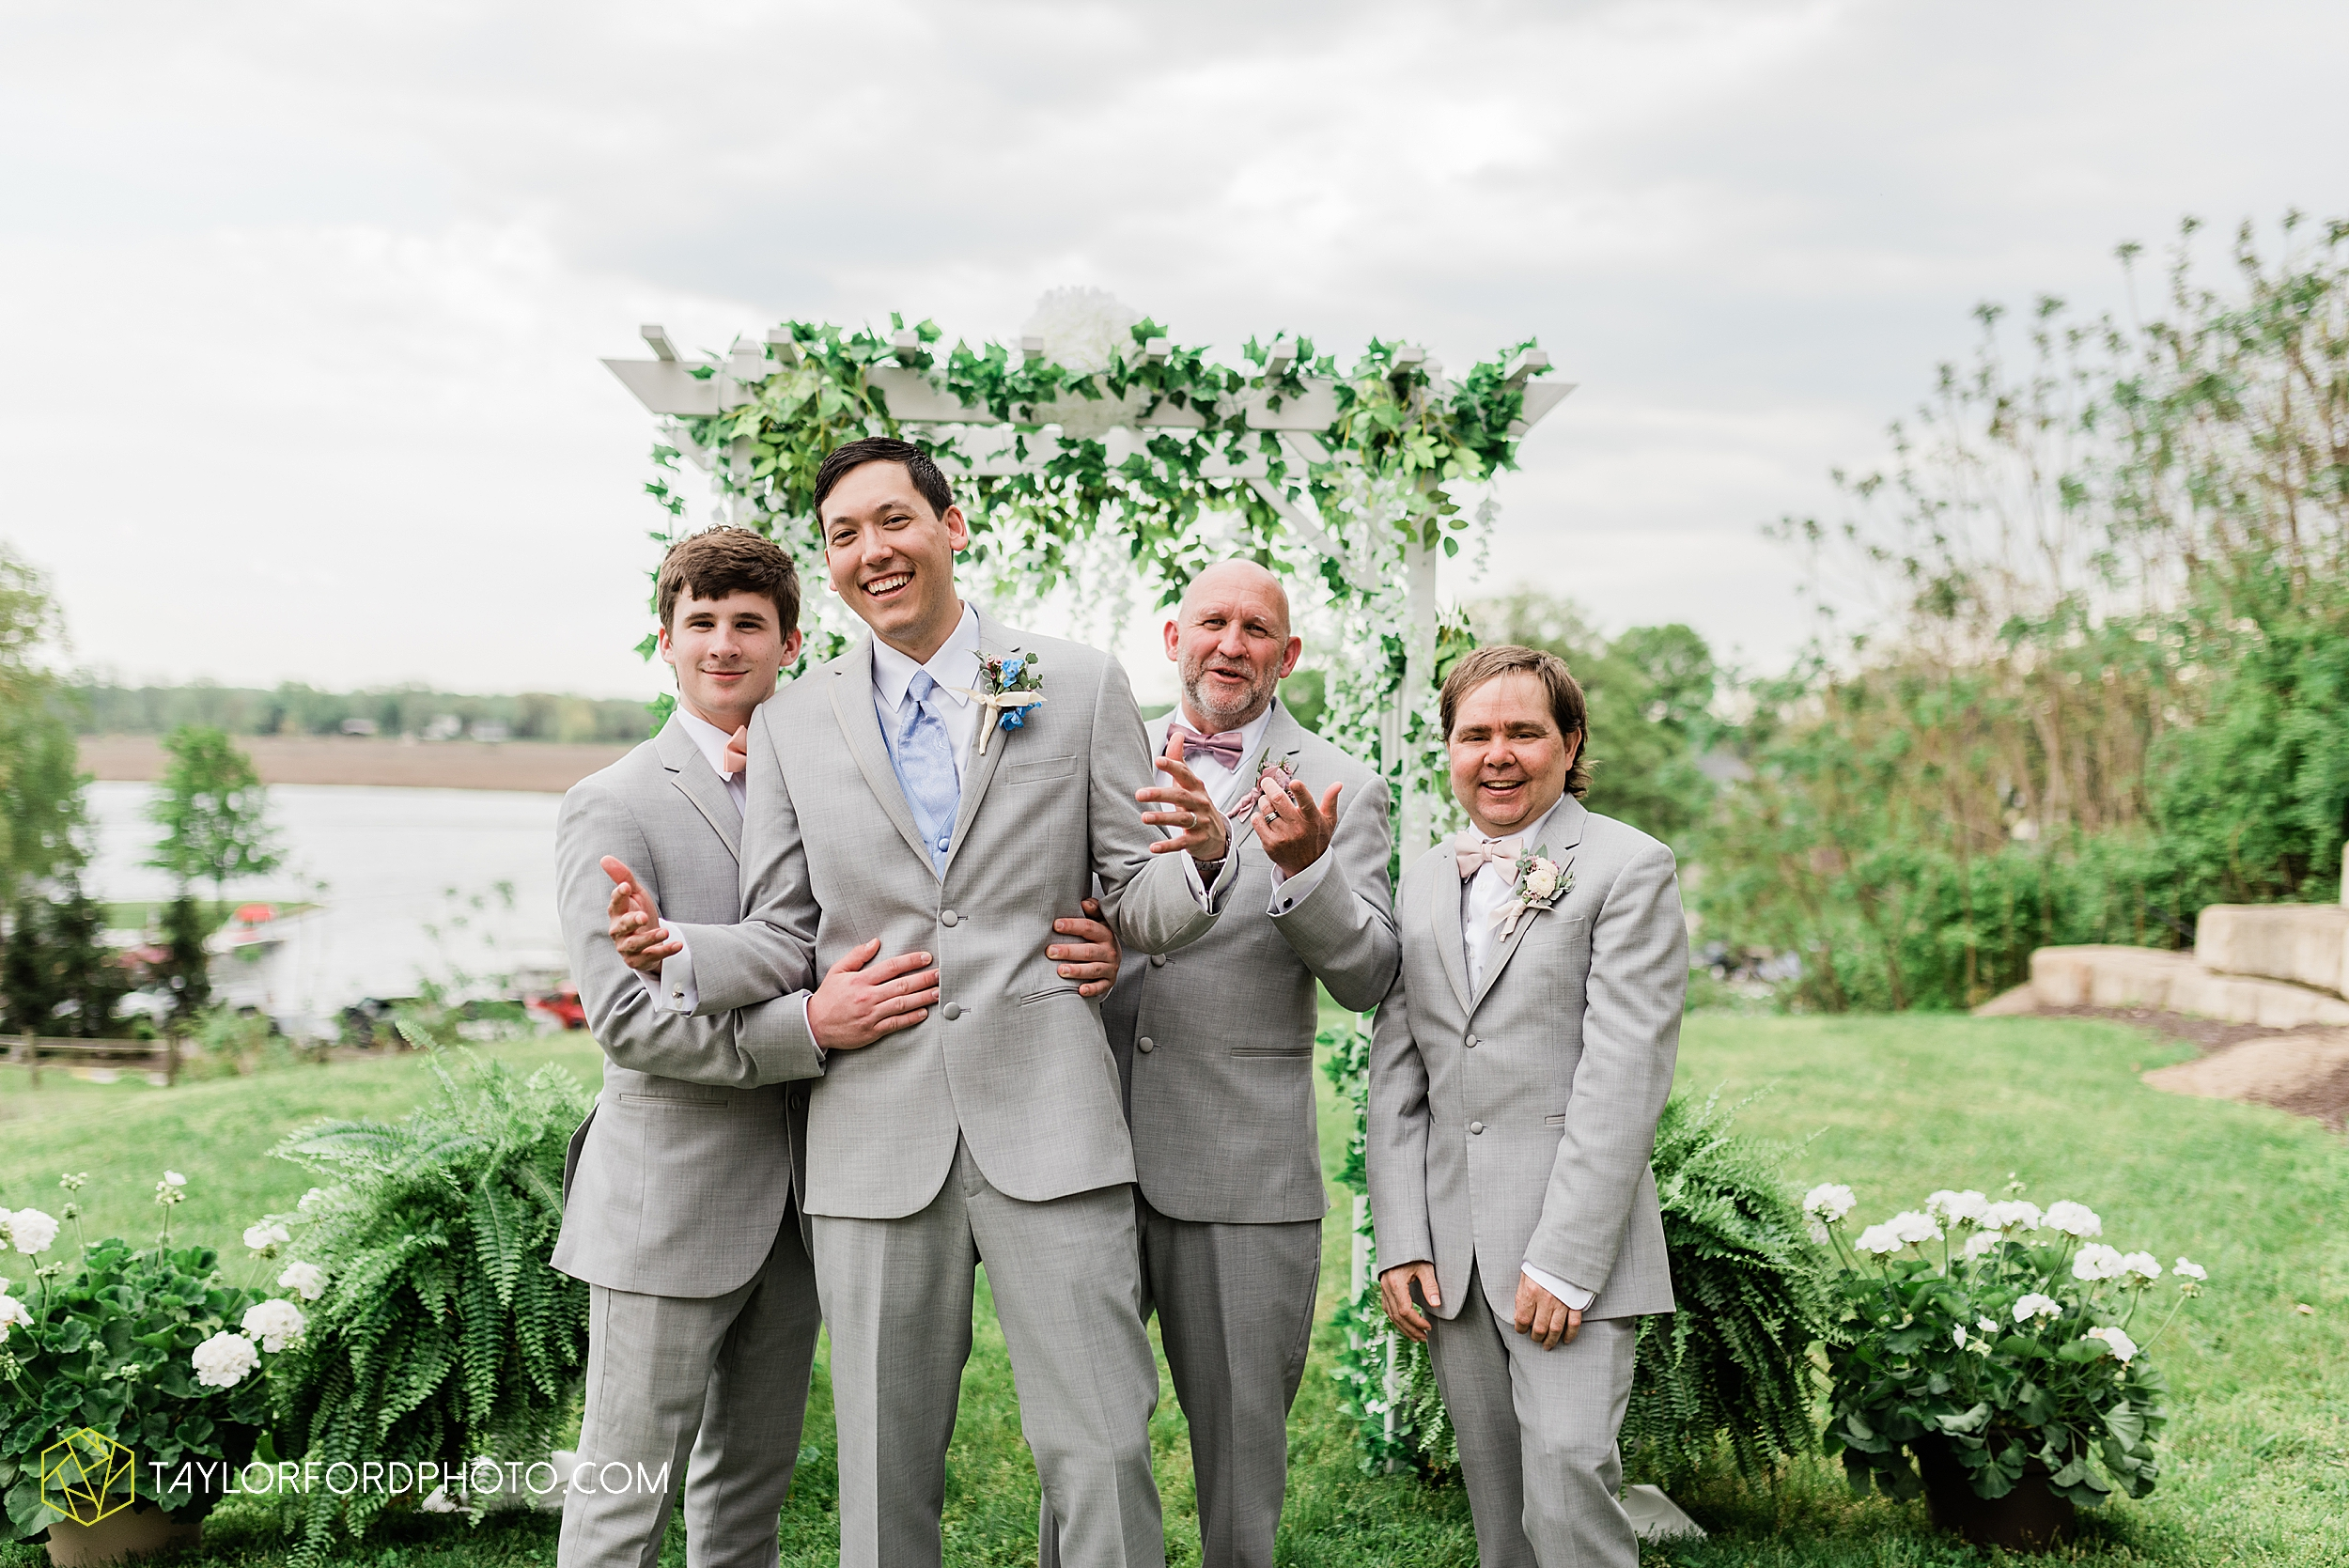 janine-shaun-oakwood-resort-syracuse-indiana-lake-wawasee-wedding-hilltop-one-fine-day-photographer-photography-taylor-ford-hirschy-photographer_2764.jpg